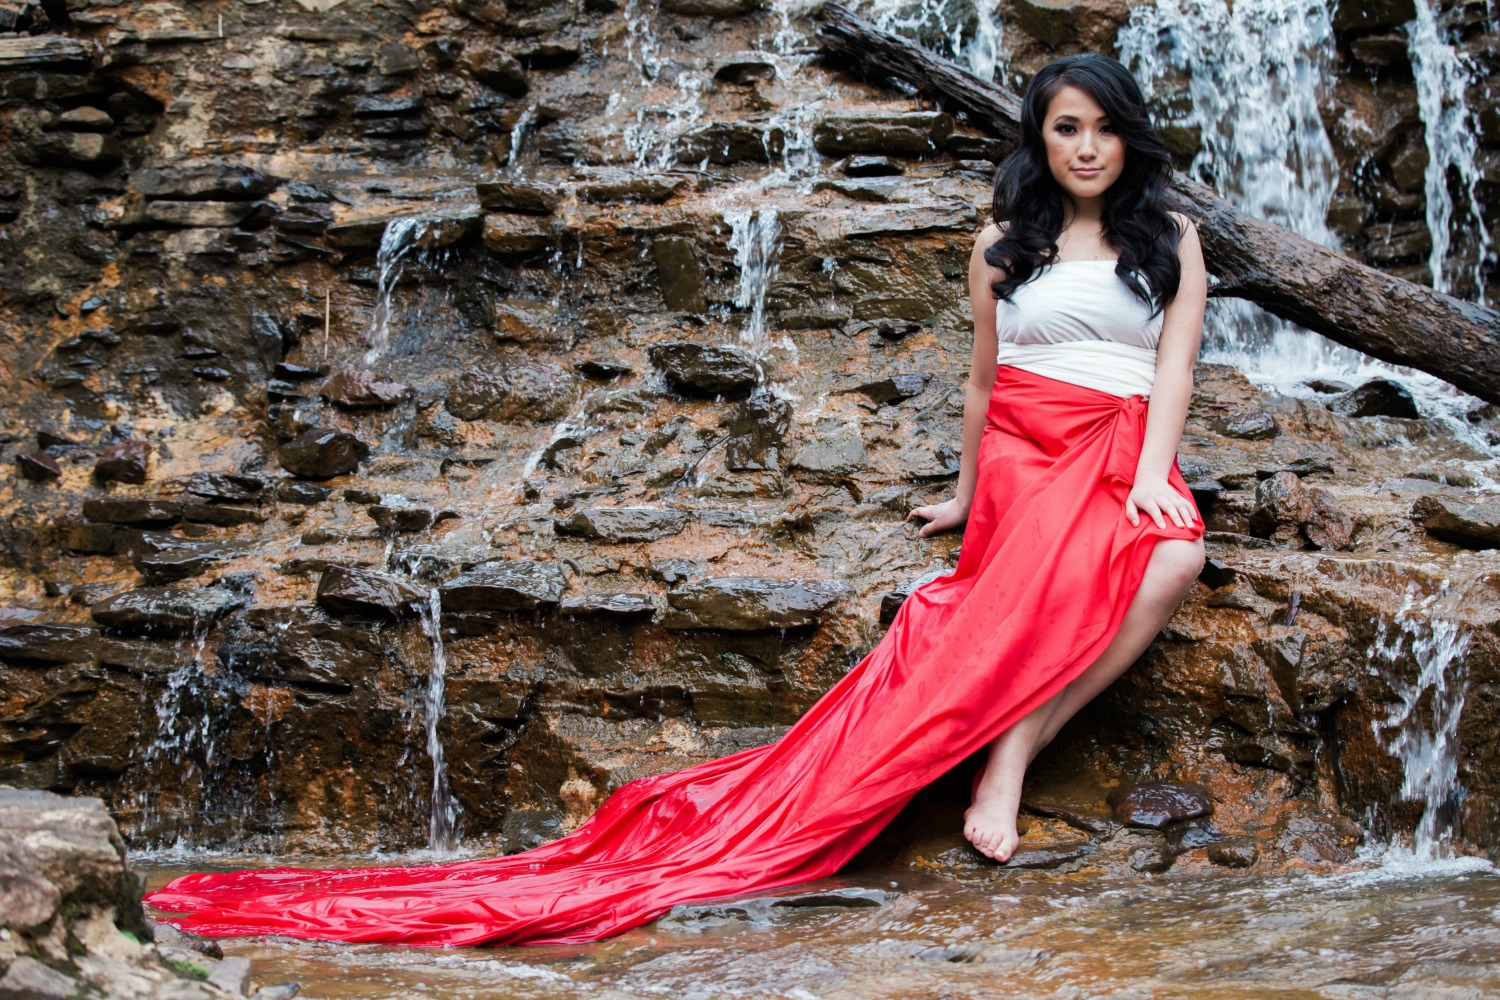 Epic-portrait-photography-near-waterfall-with-beautiful-young-asian-girl Asian Wedding Photographer Bradford